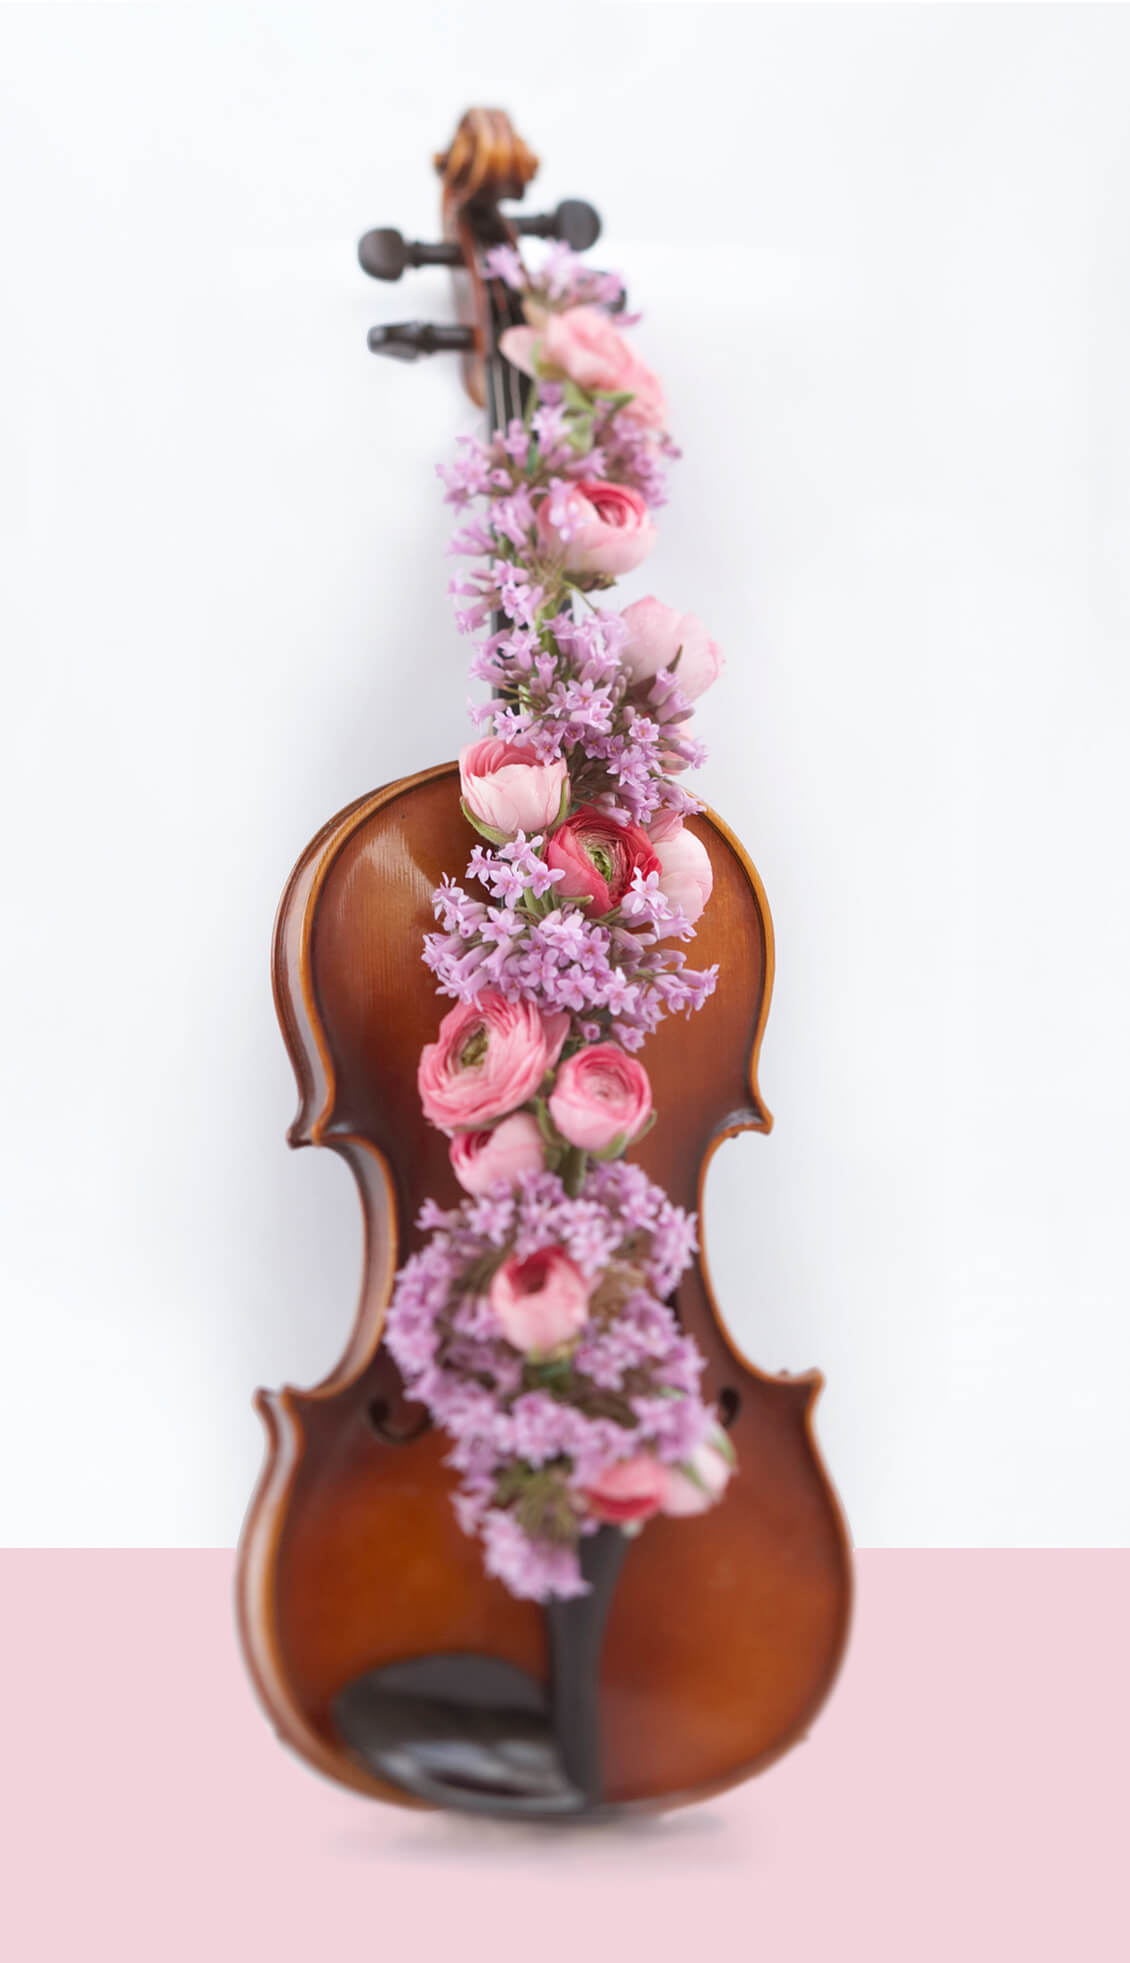 violin with flowers interior design photography